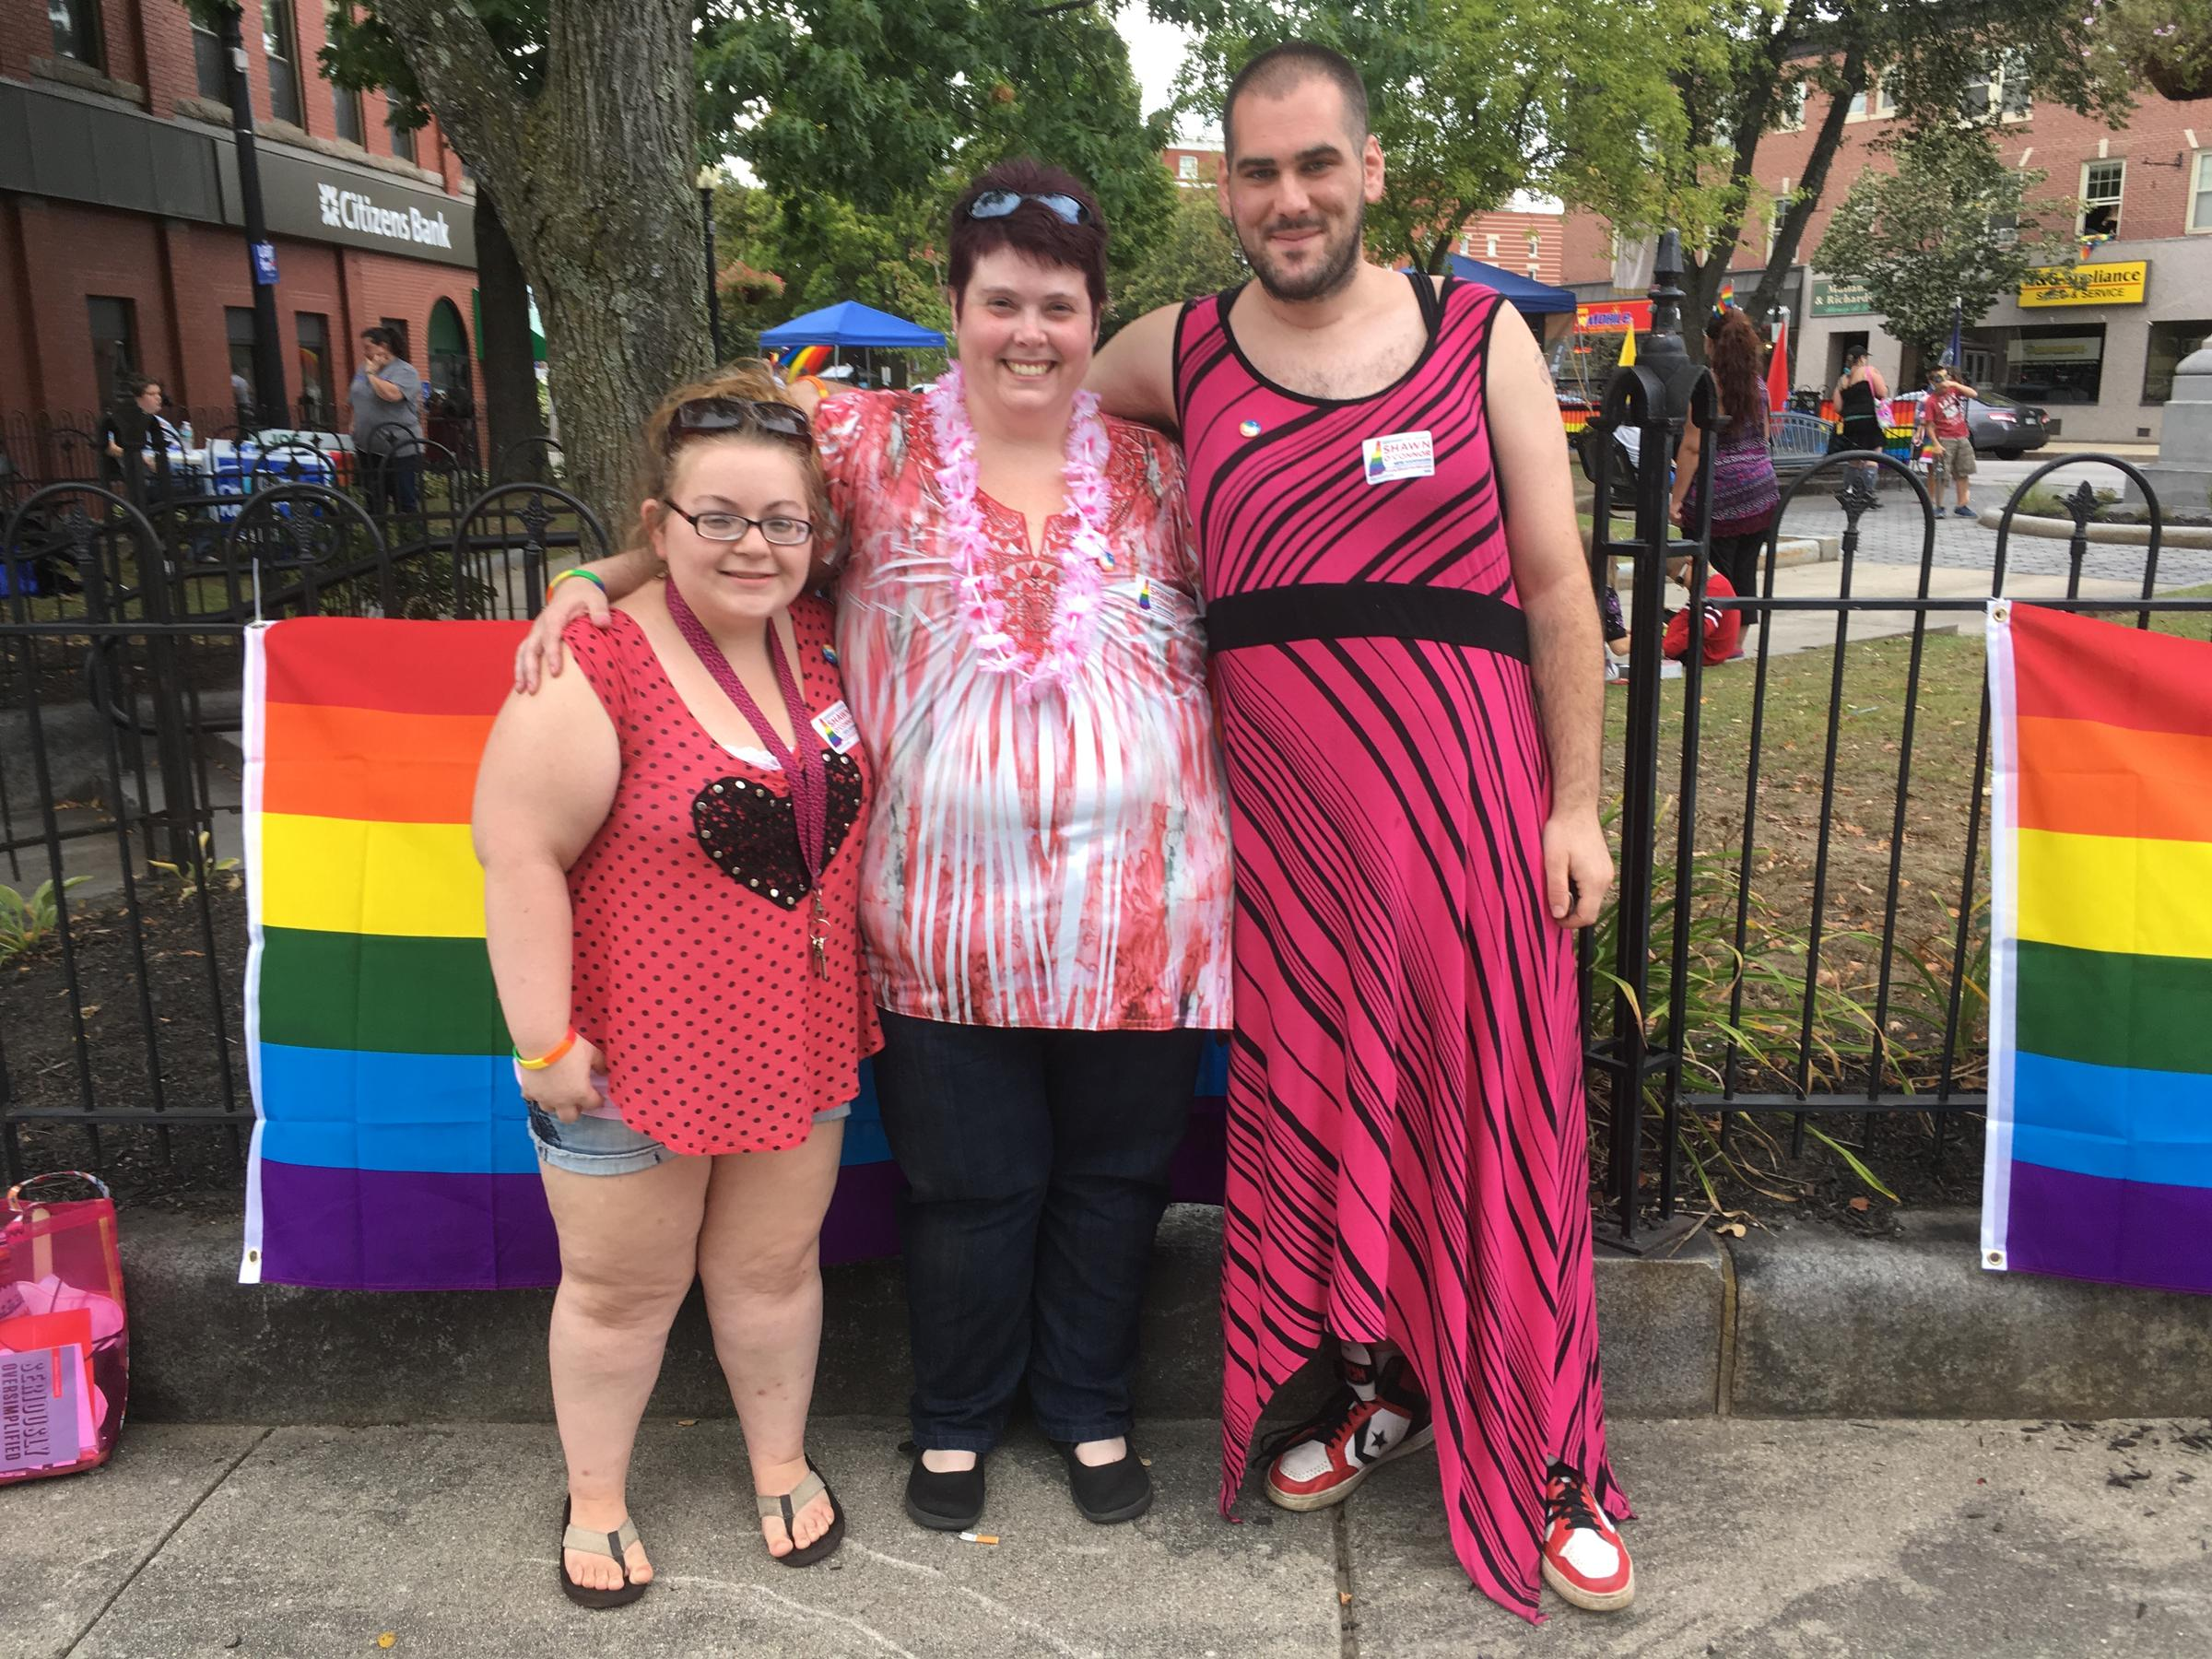 from Thomas gay and lesbian pride new hampshire